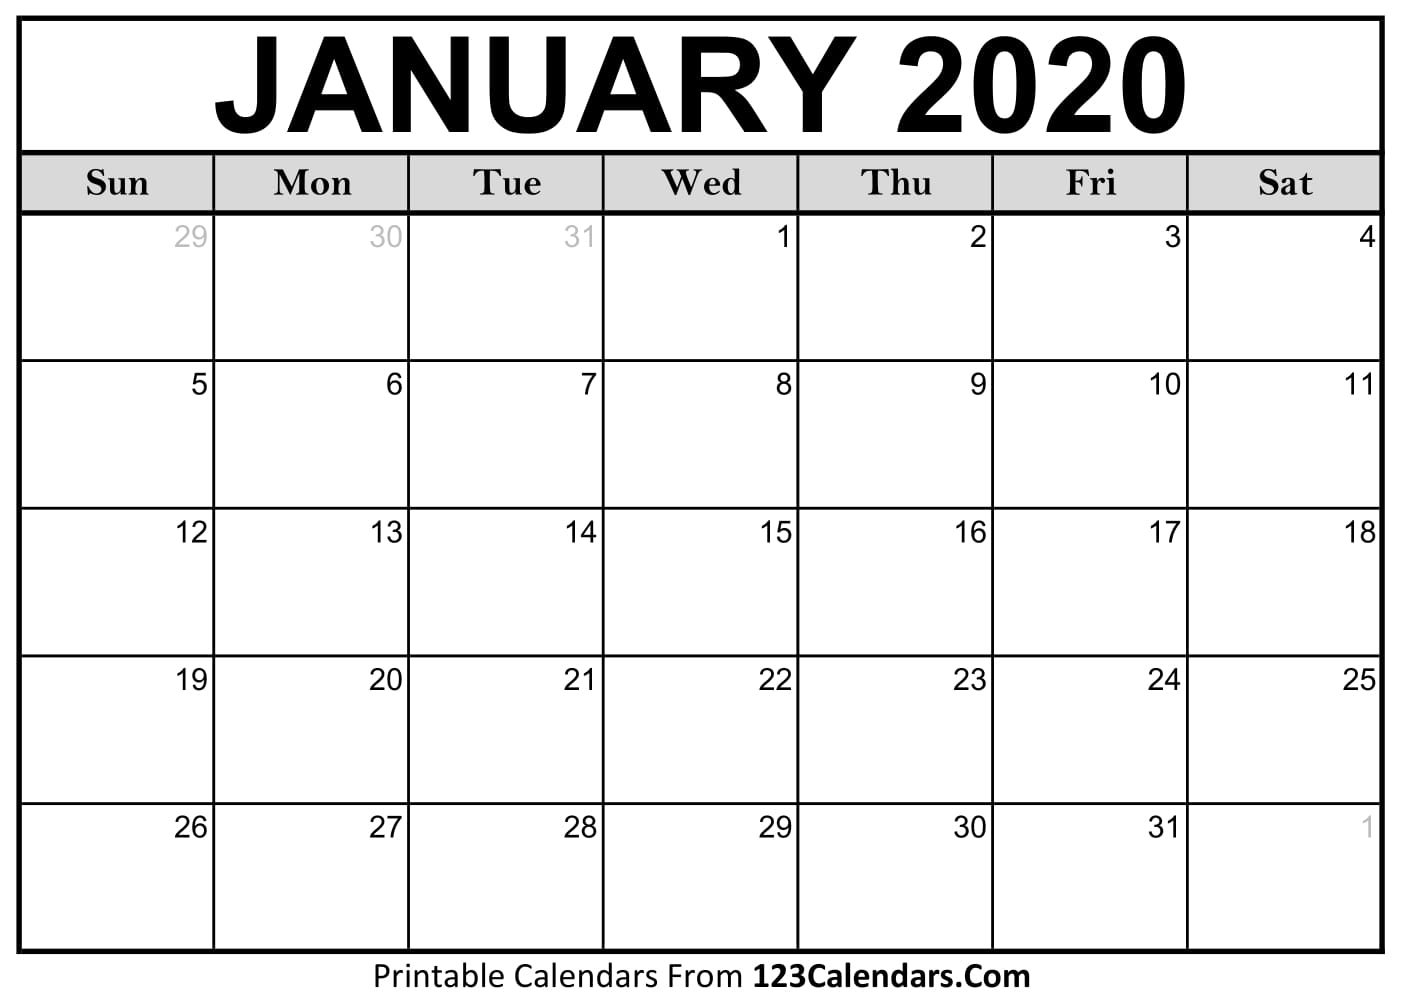 Free Printable Calendar | 123Calendars with regard to Blank Calander 2020 Fill In